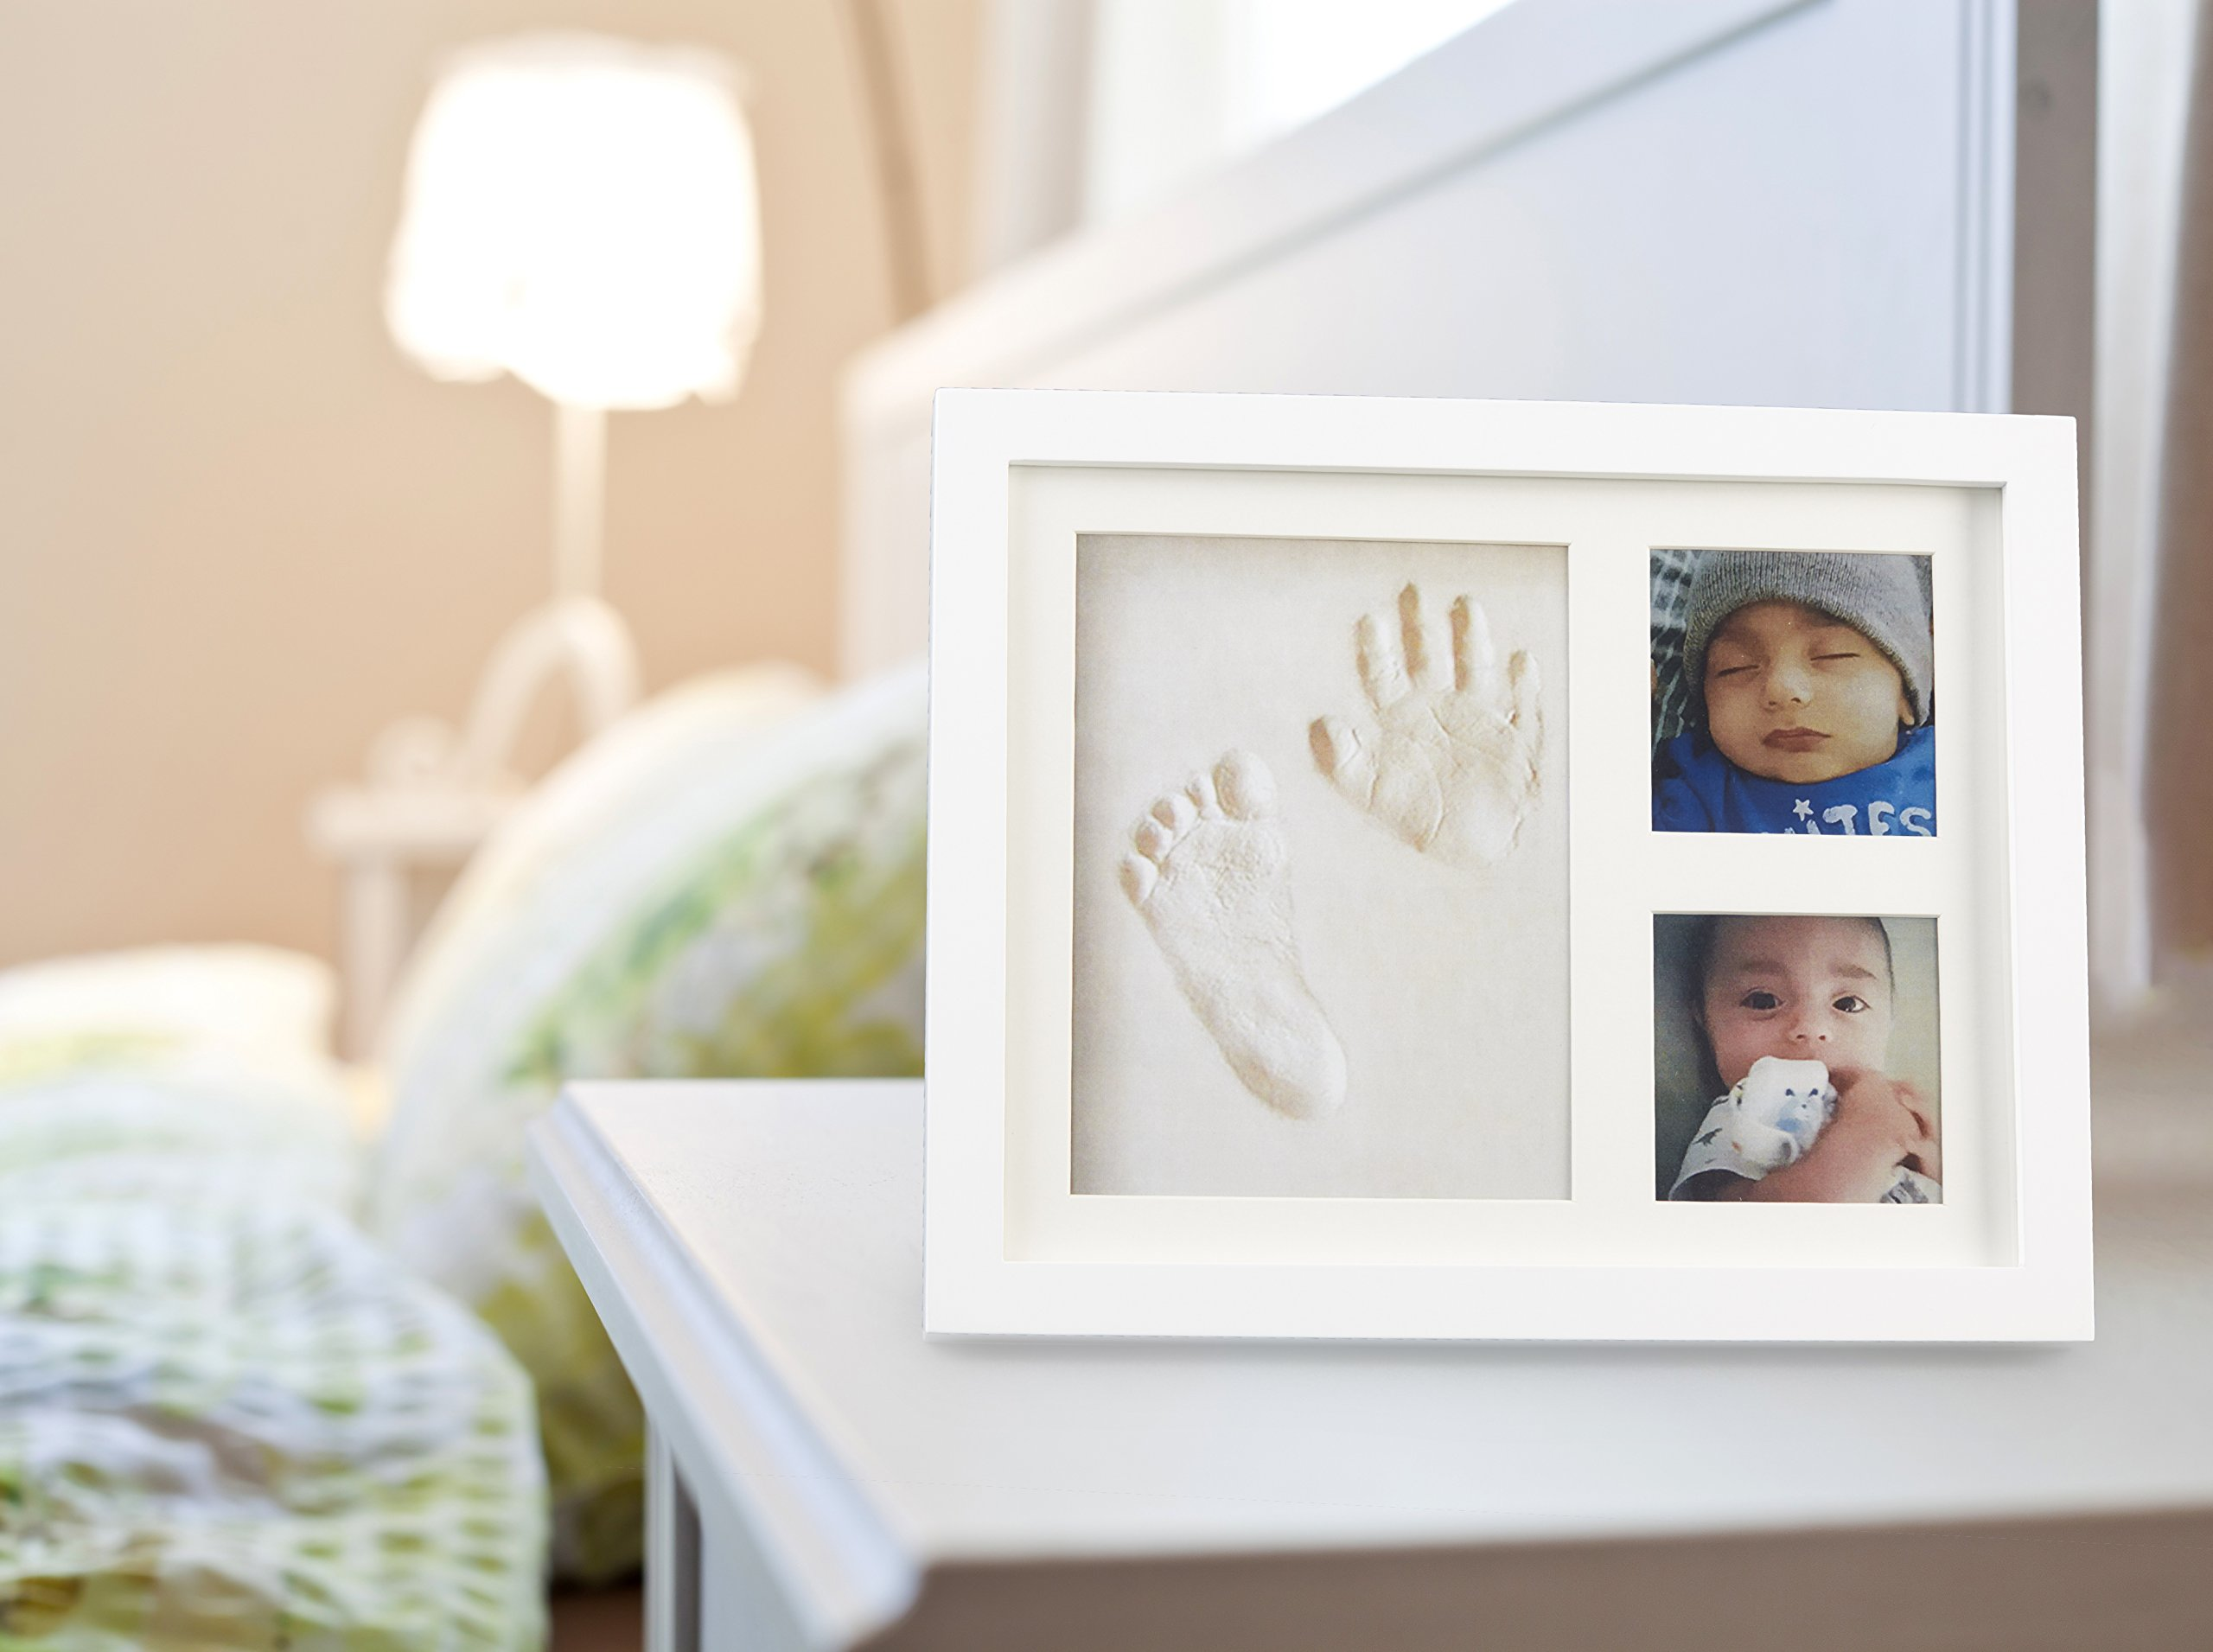 Baby Handprint Picture Frame Clay Kit for Newborn Girls and Boys by Baby Yei - The Photo Frames are Fully Painted White-Prevents Mold Creation-Safe for Treasuring your Angel's First Precious Memories by Baby Yei (Image #9)